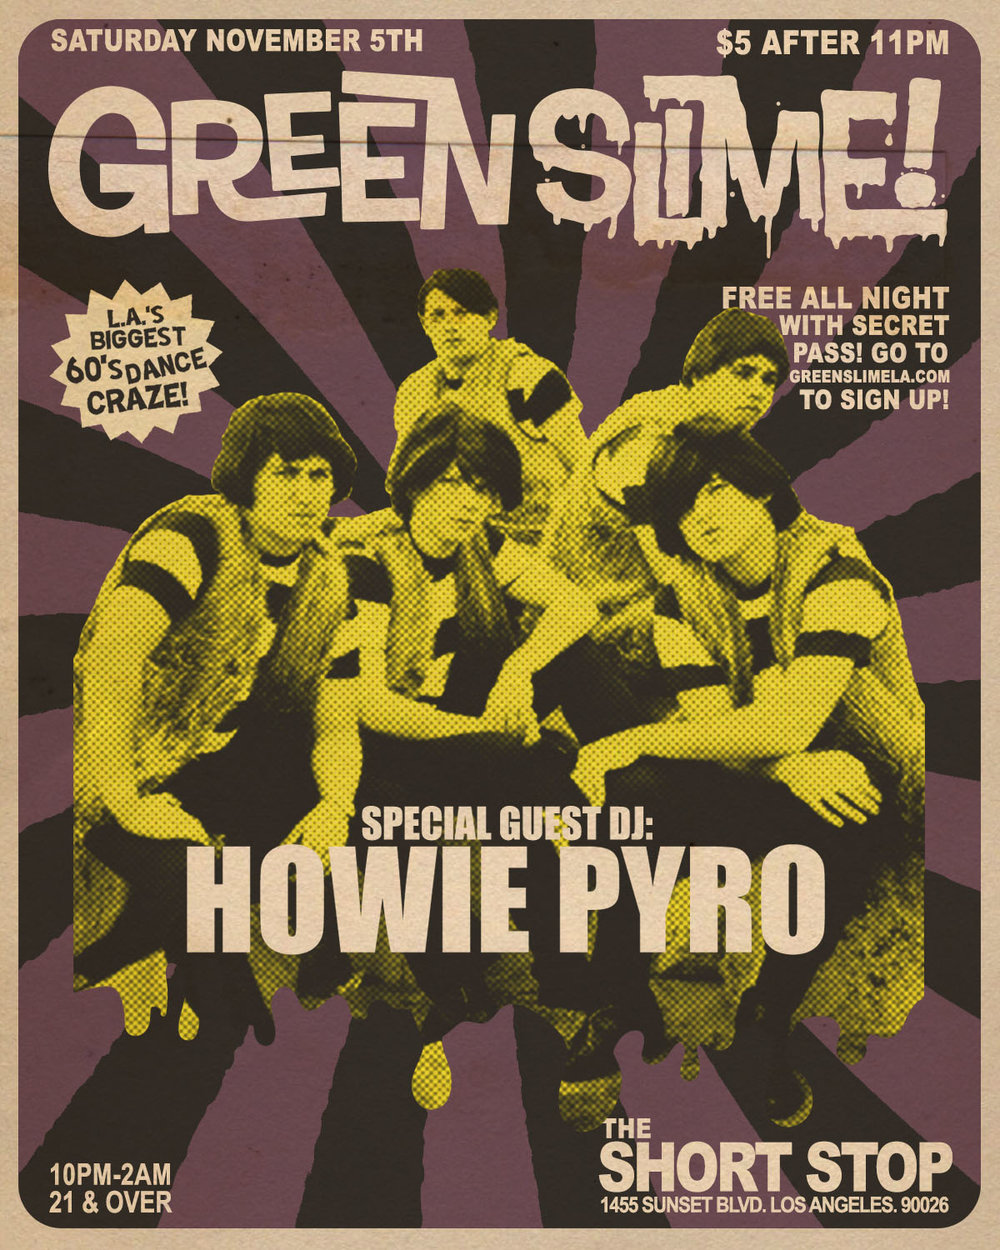 GREEN SLIME NOV.jpg